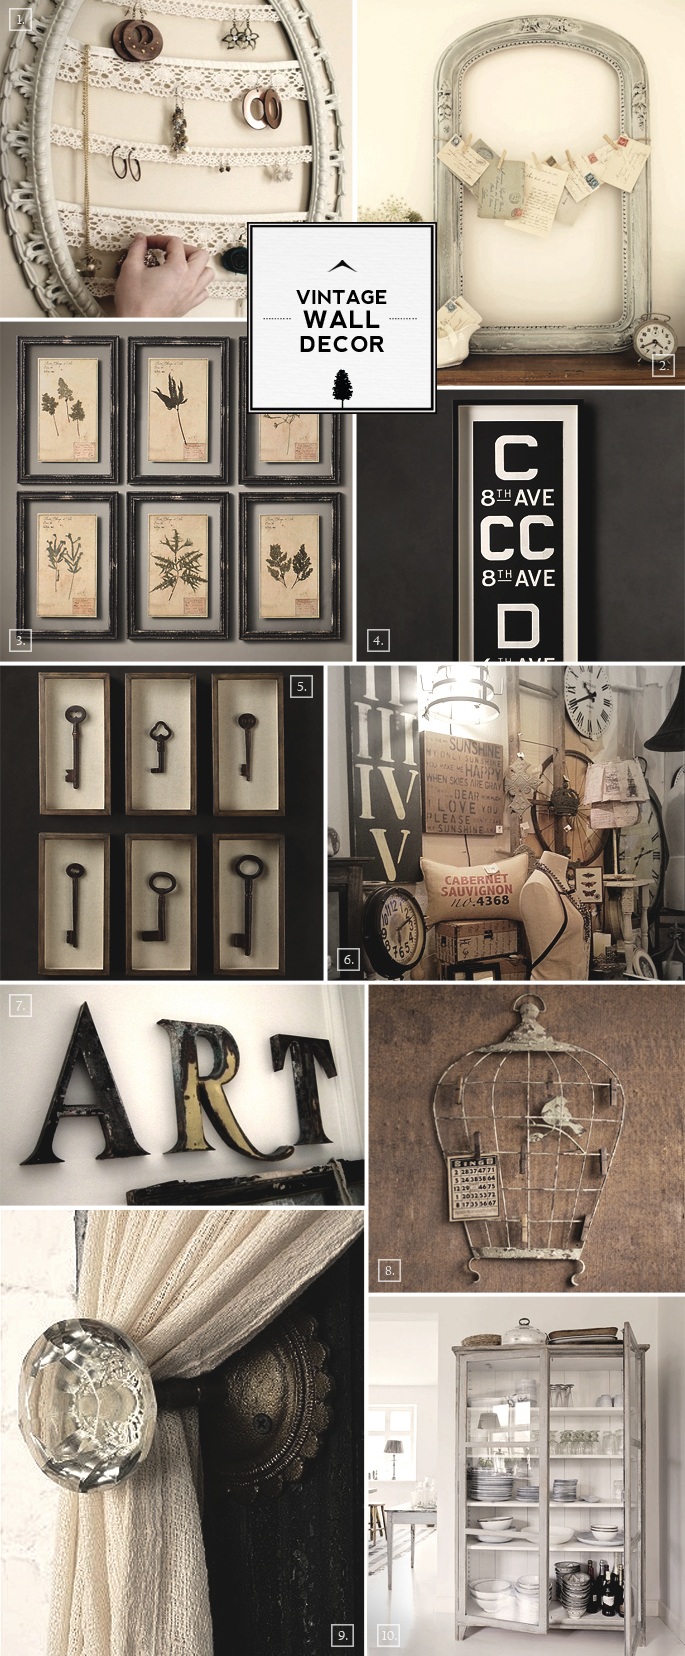 Beau Vintage Wall Decor Ideas